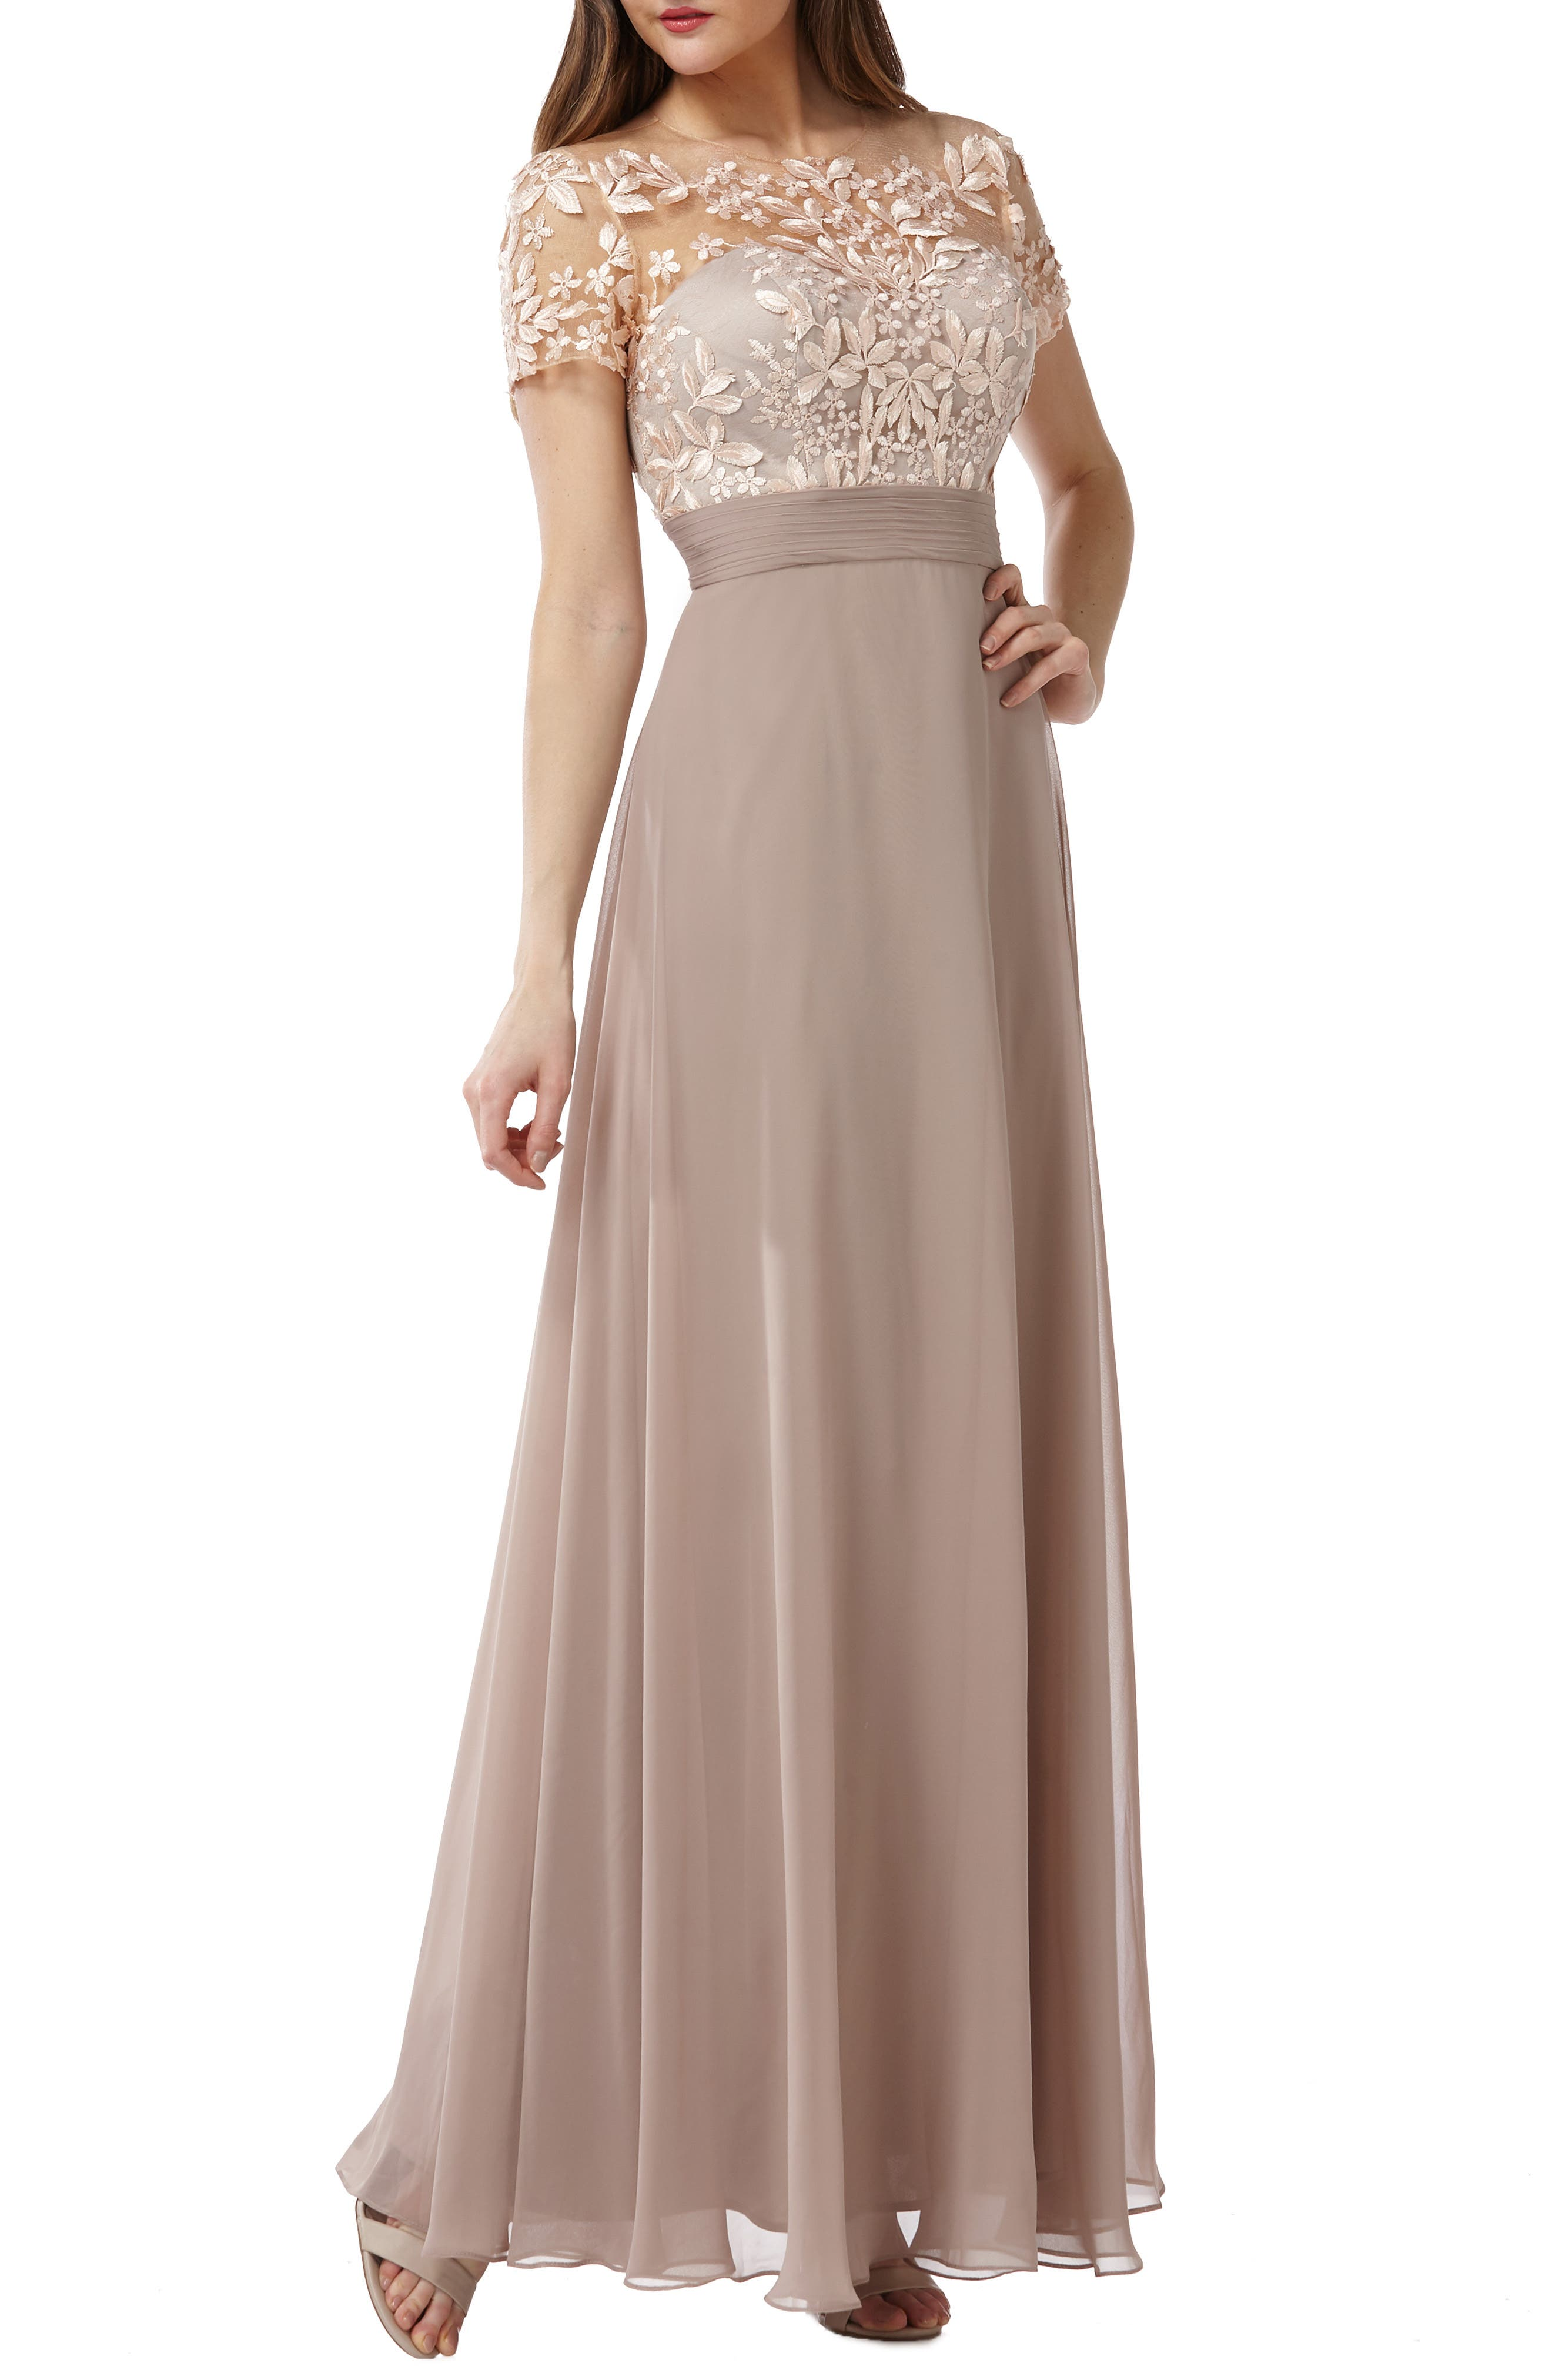 Js Collections Embroidered Illusion Bodice Gown, Beige